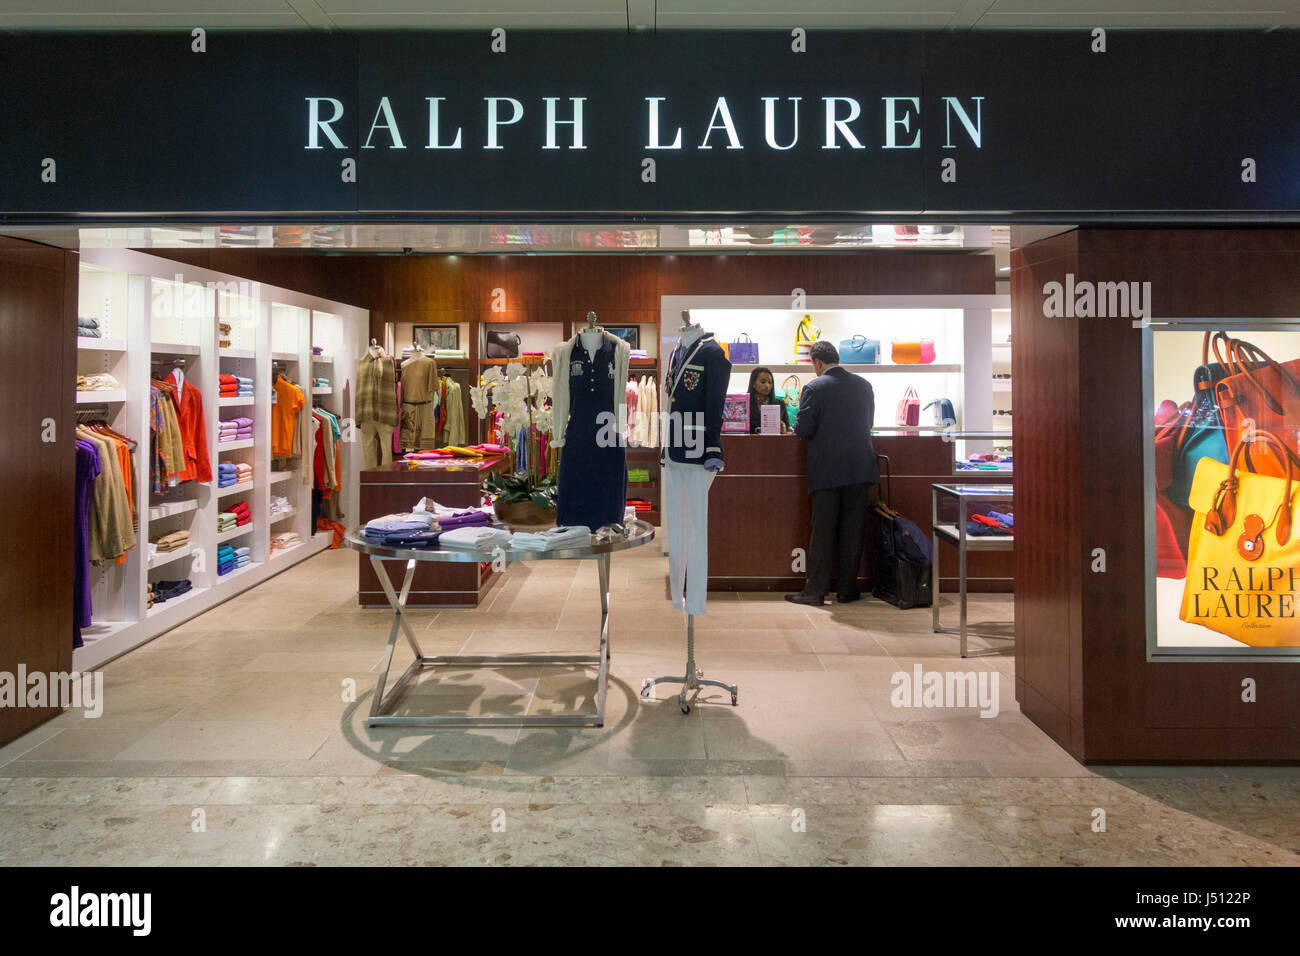 Ralph Lauren store, Geneva International Airport, Switzerland - Stock Image